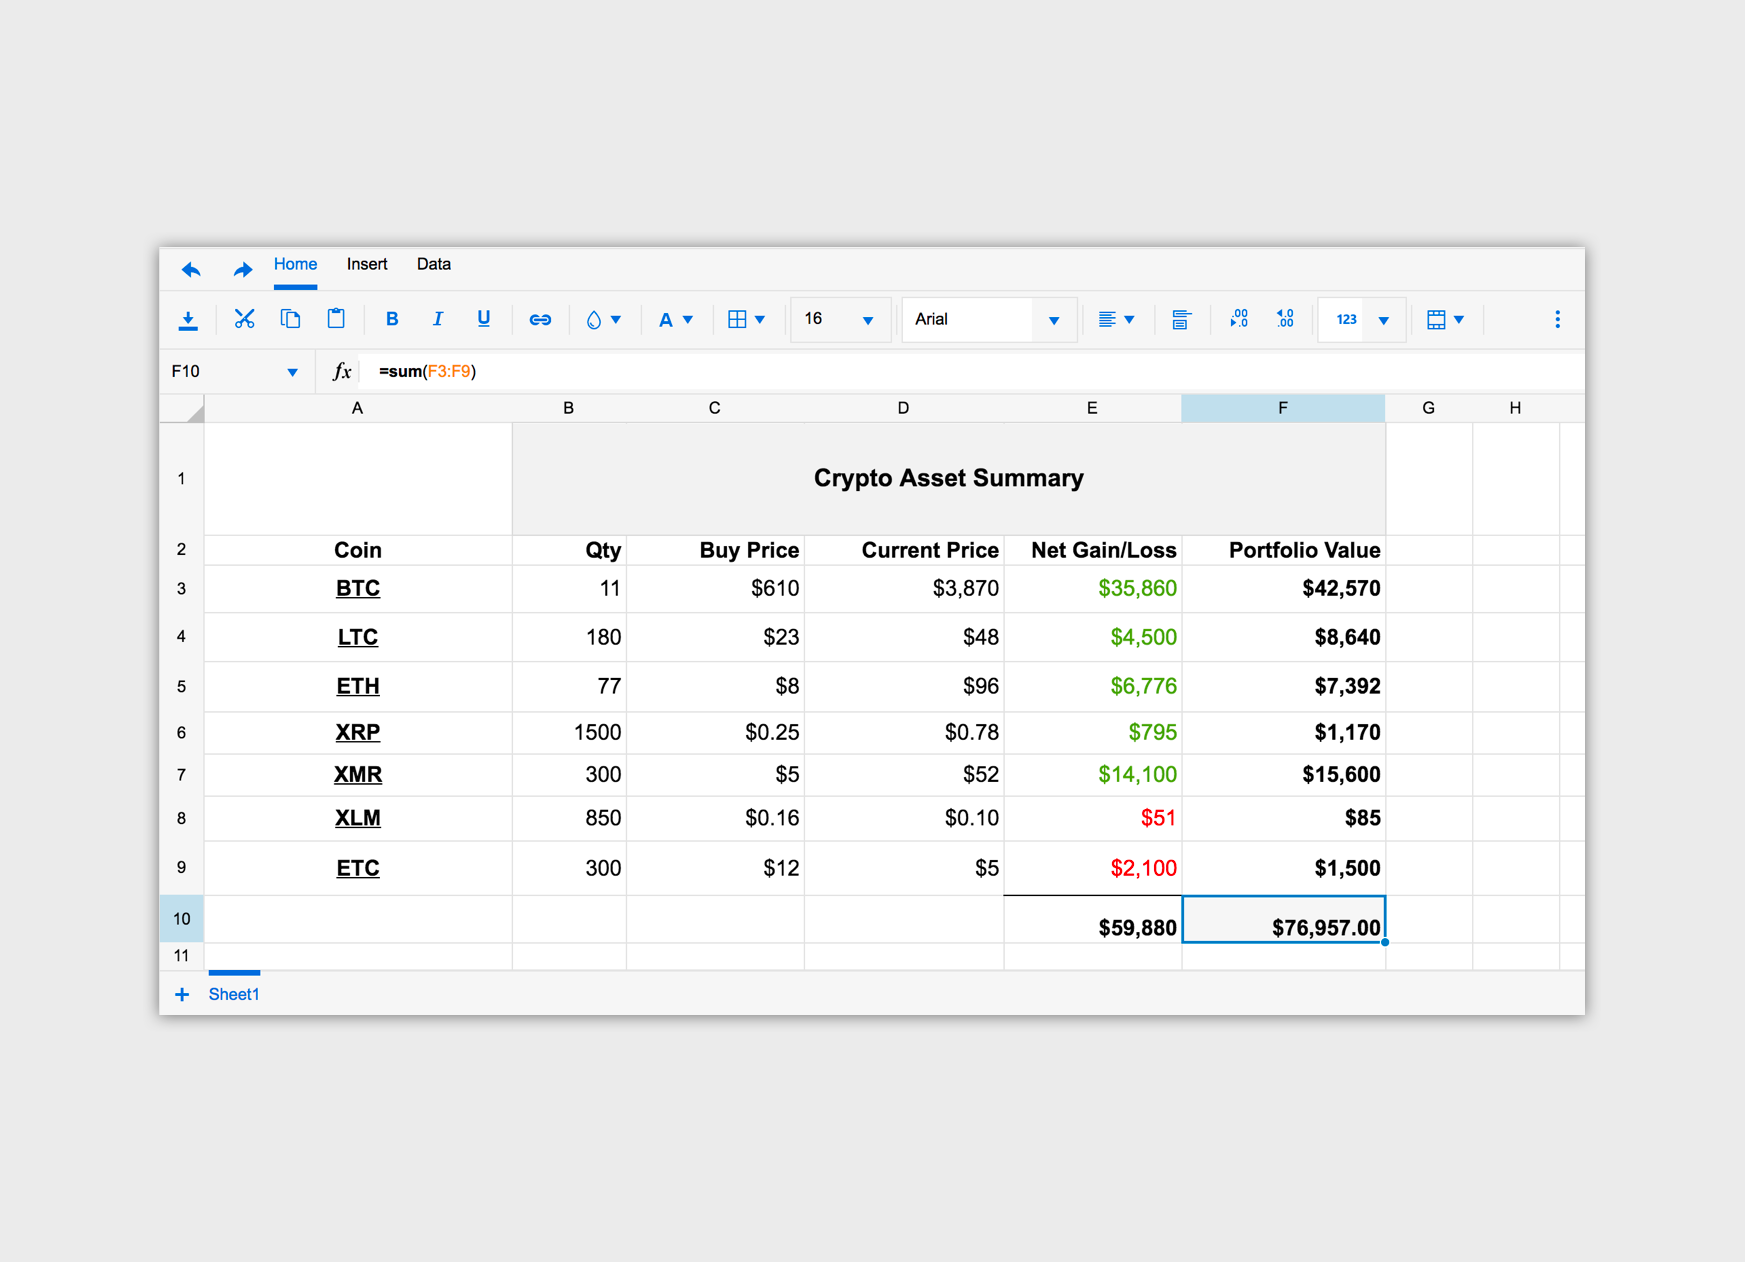 A powerful spreadsheet editor with formatting and formula support. Ideal for personal budgeting and finance worksheets.